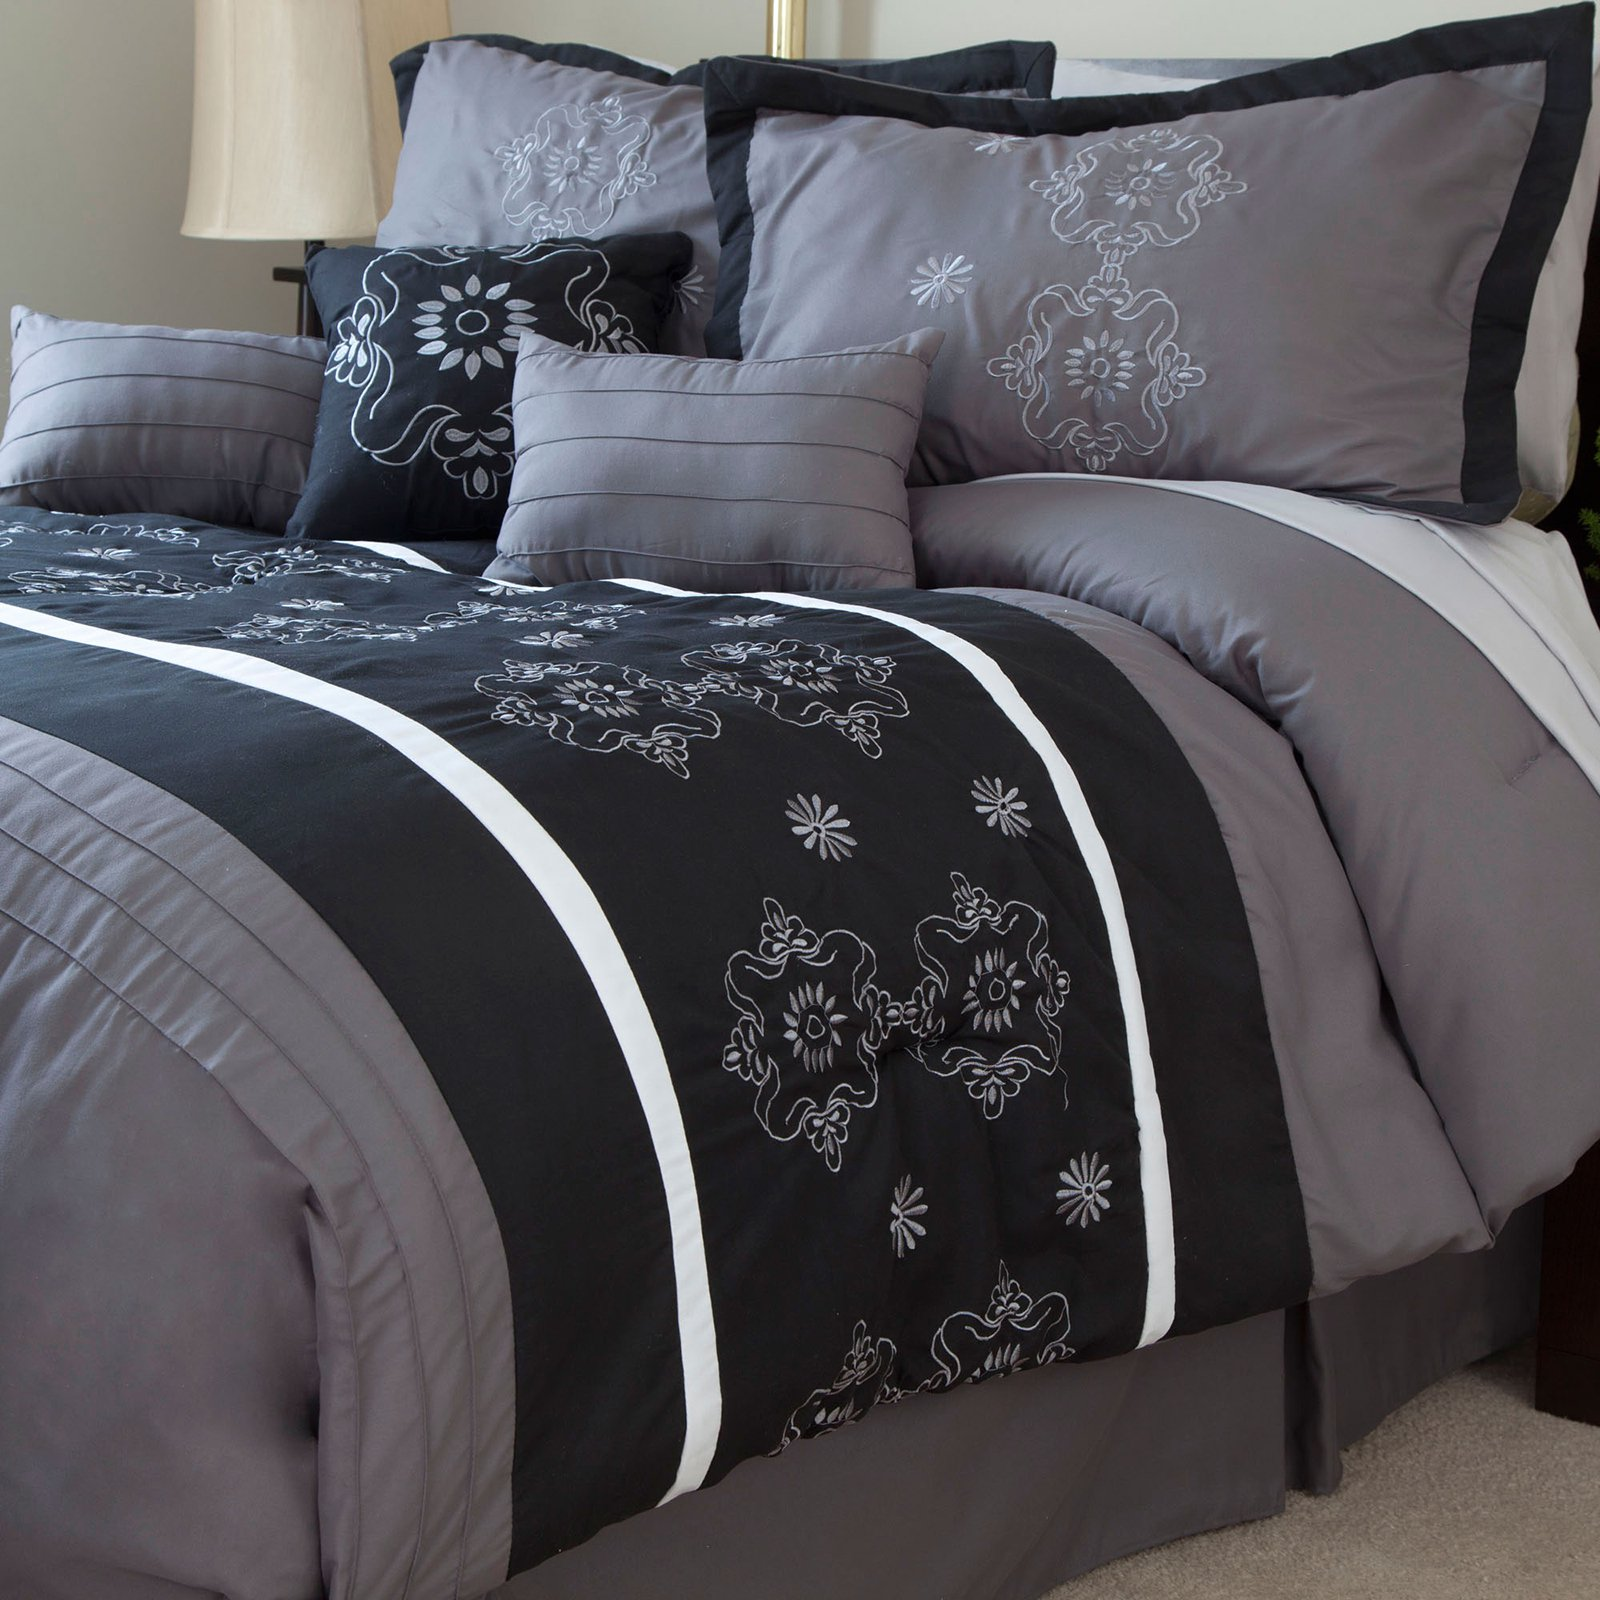 Julia 7 Piece Embroidered Comforter Set by Lavish Home